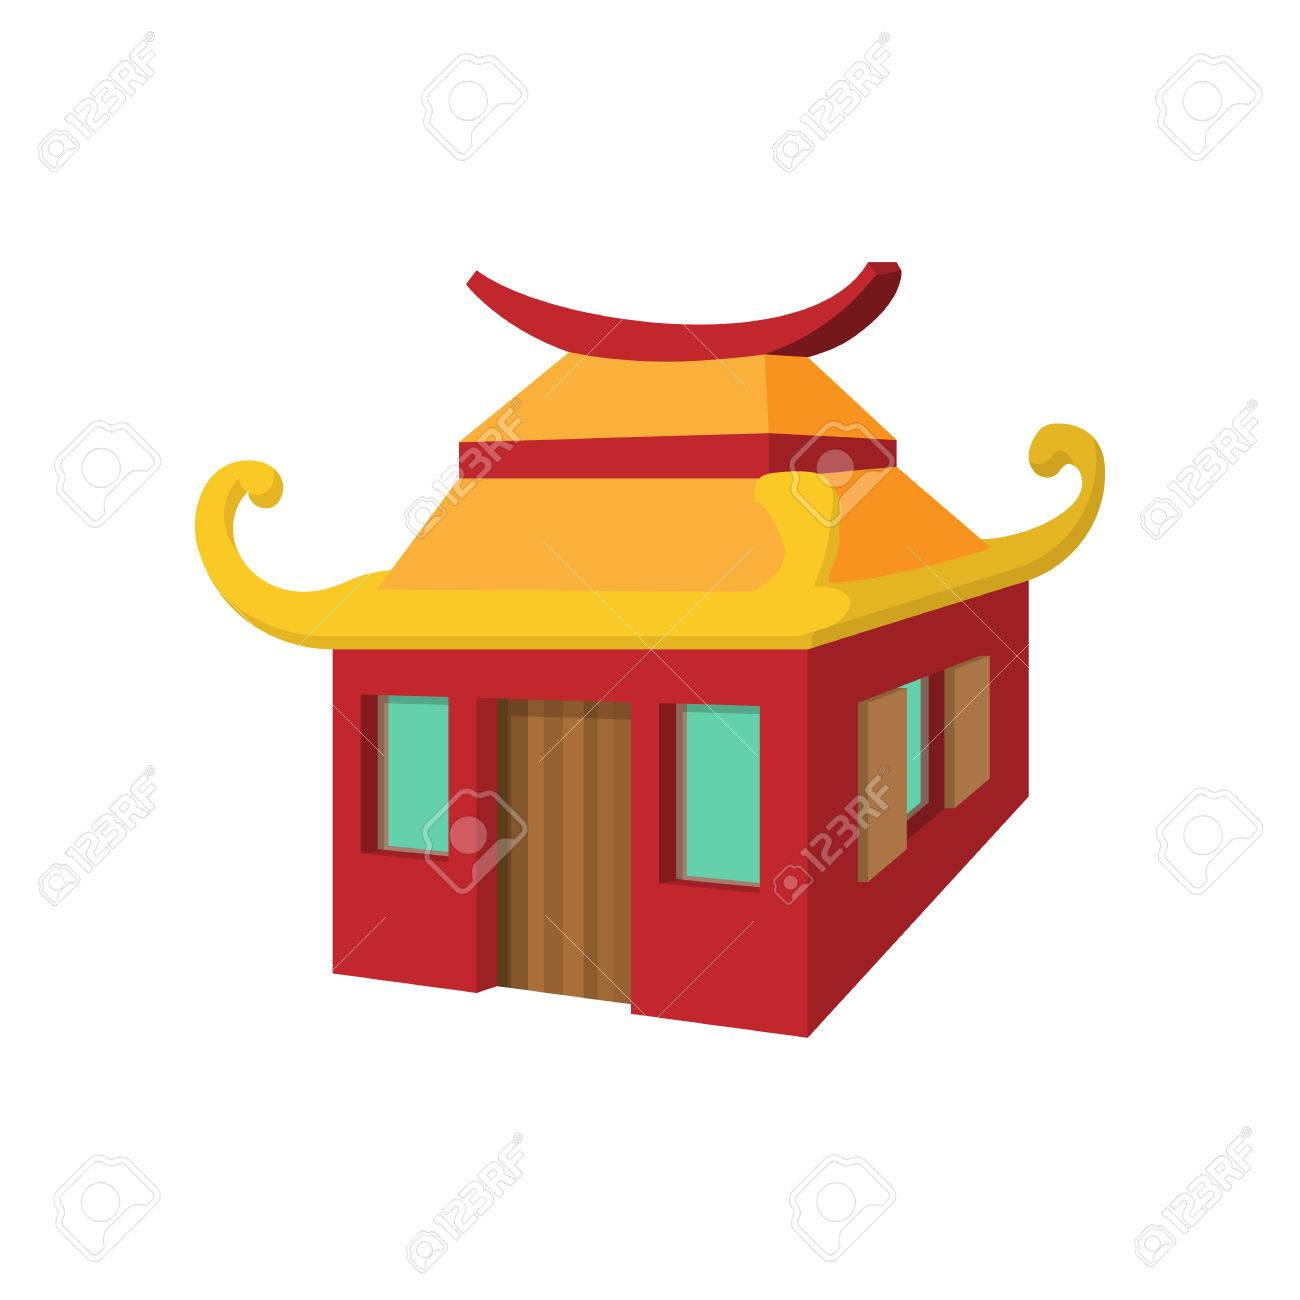 Chinese House In Cartoon Style Isolated On White Background